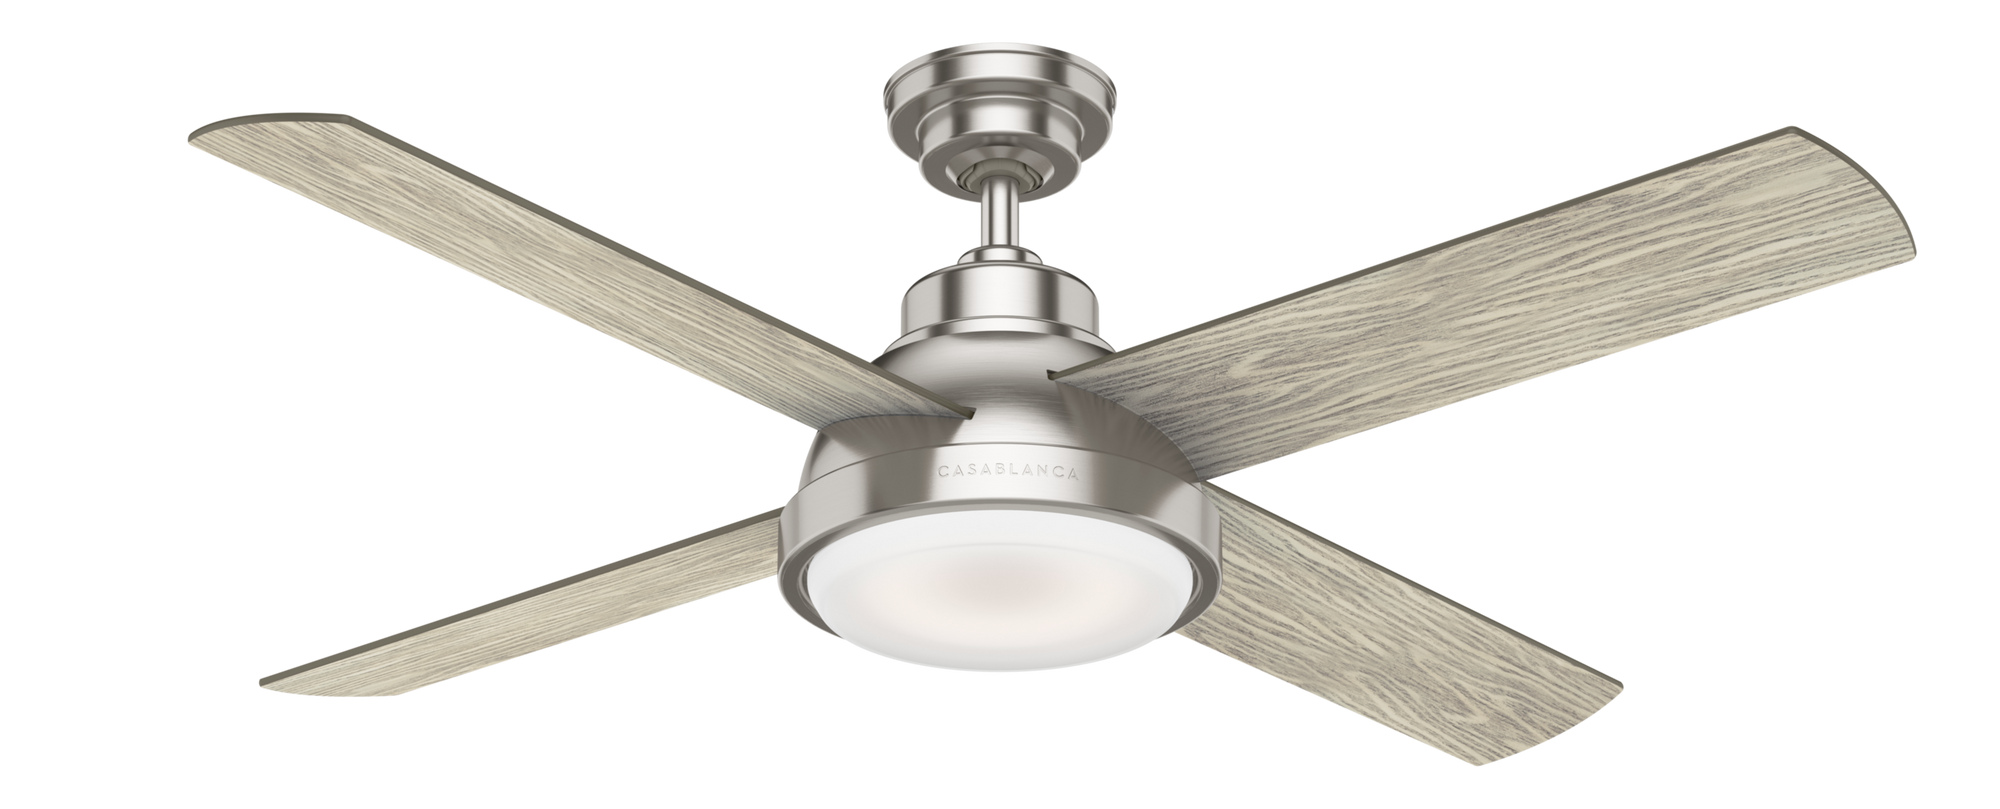 Casablanca Indoor Levitt Ceiling Fan with LED LightJD inch, Brushed Nickel/Chrome, 59433